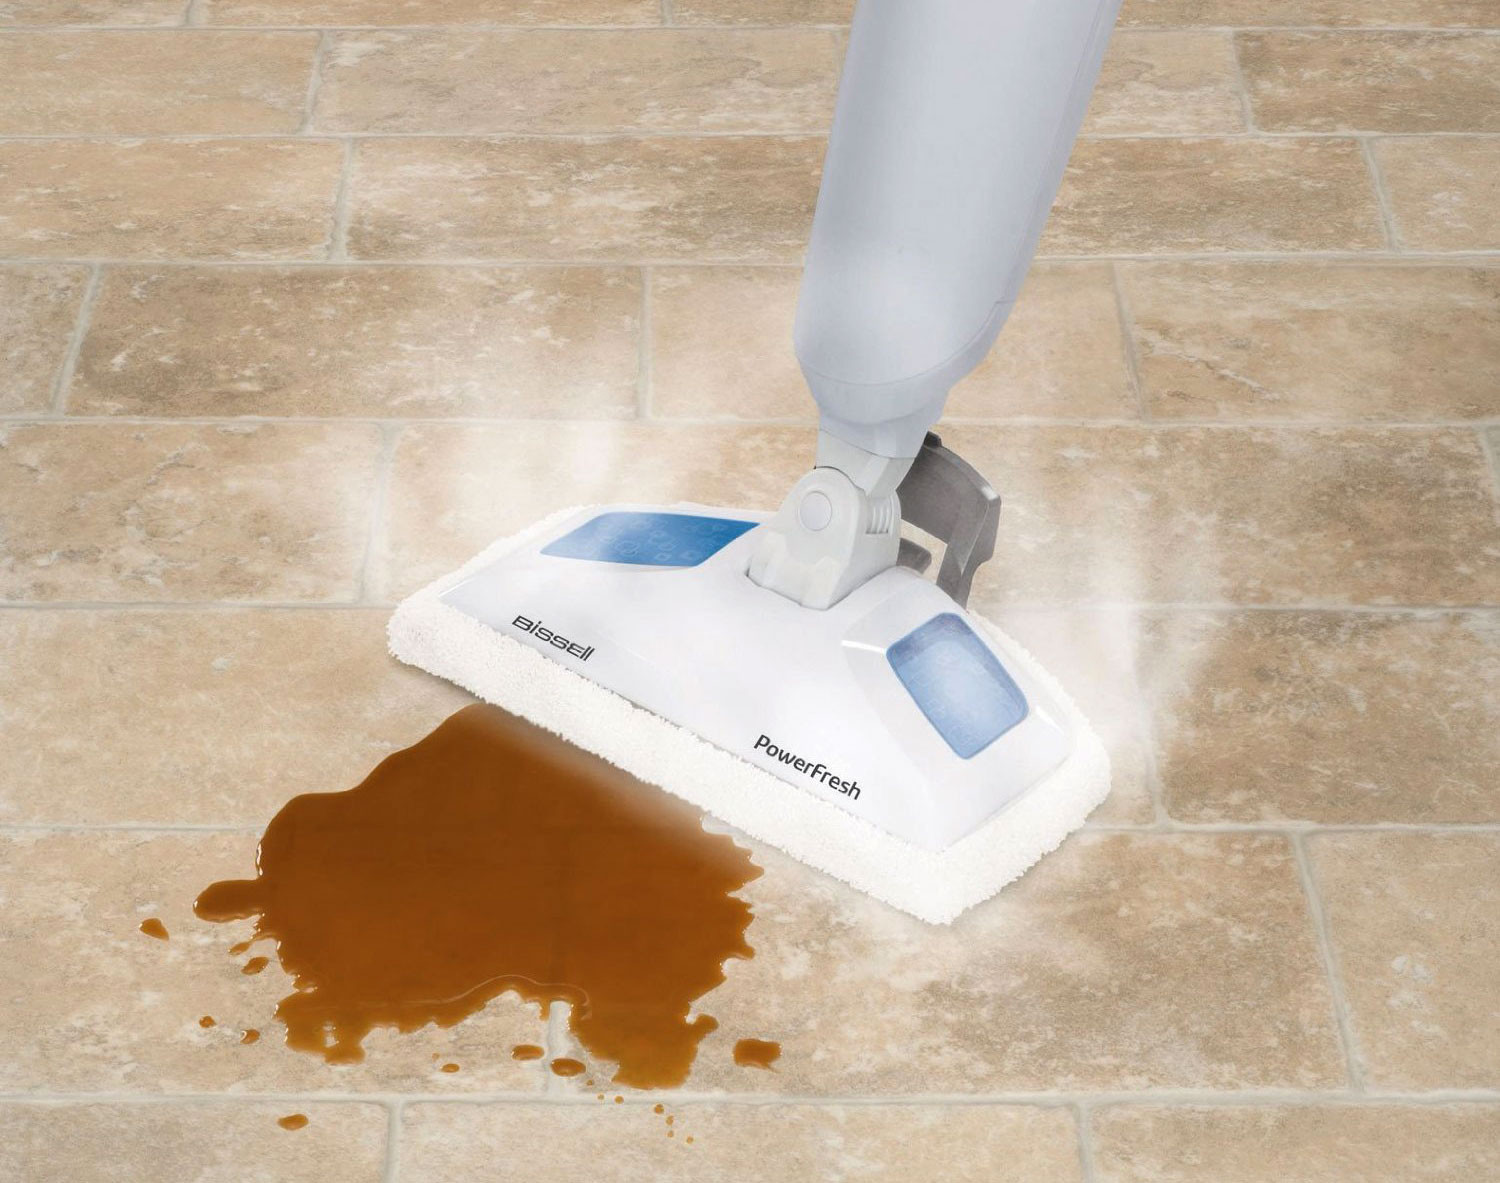 Best Hardwood Floor Shiner Of the 4 Best Steam Mops within A3e8dac8 Fd9f 4940 Ad99 8094ad1403c3 811cn2sa0wl Sl1500